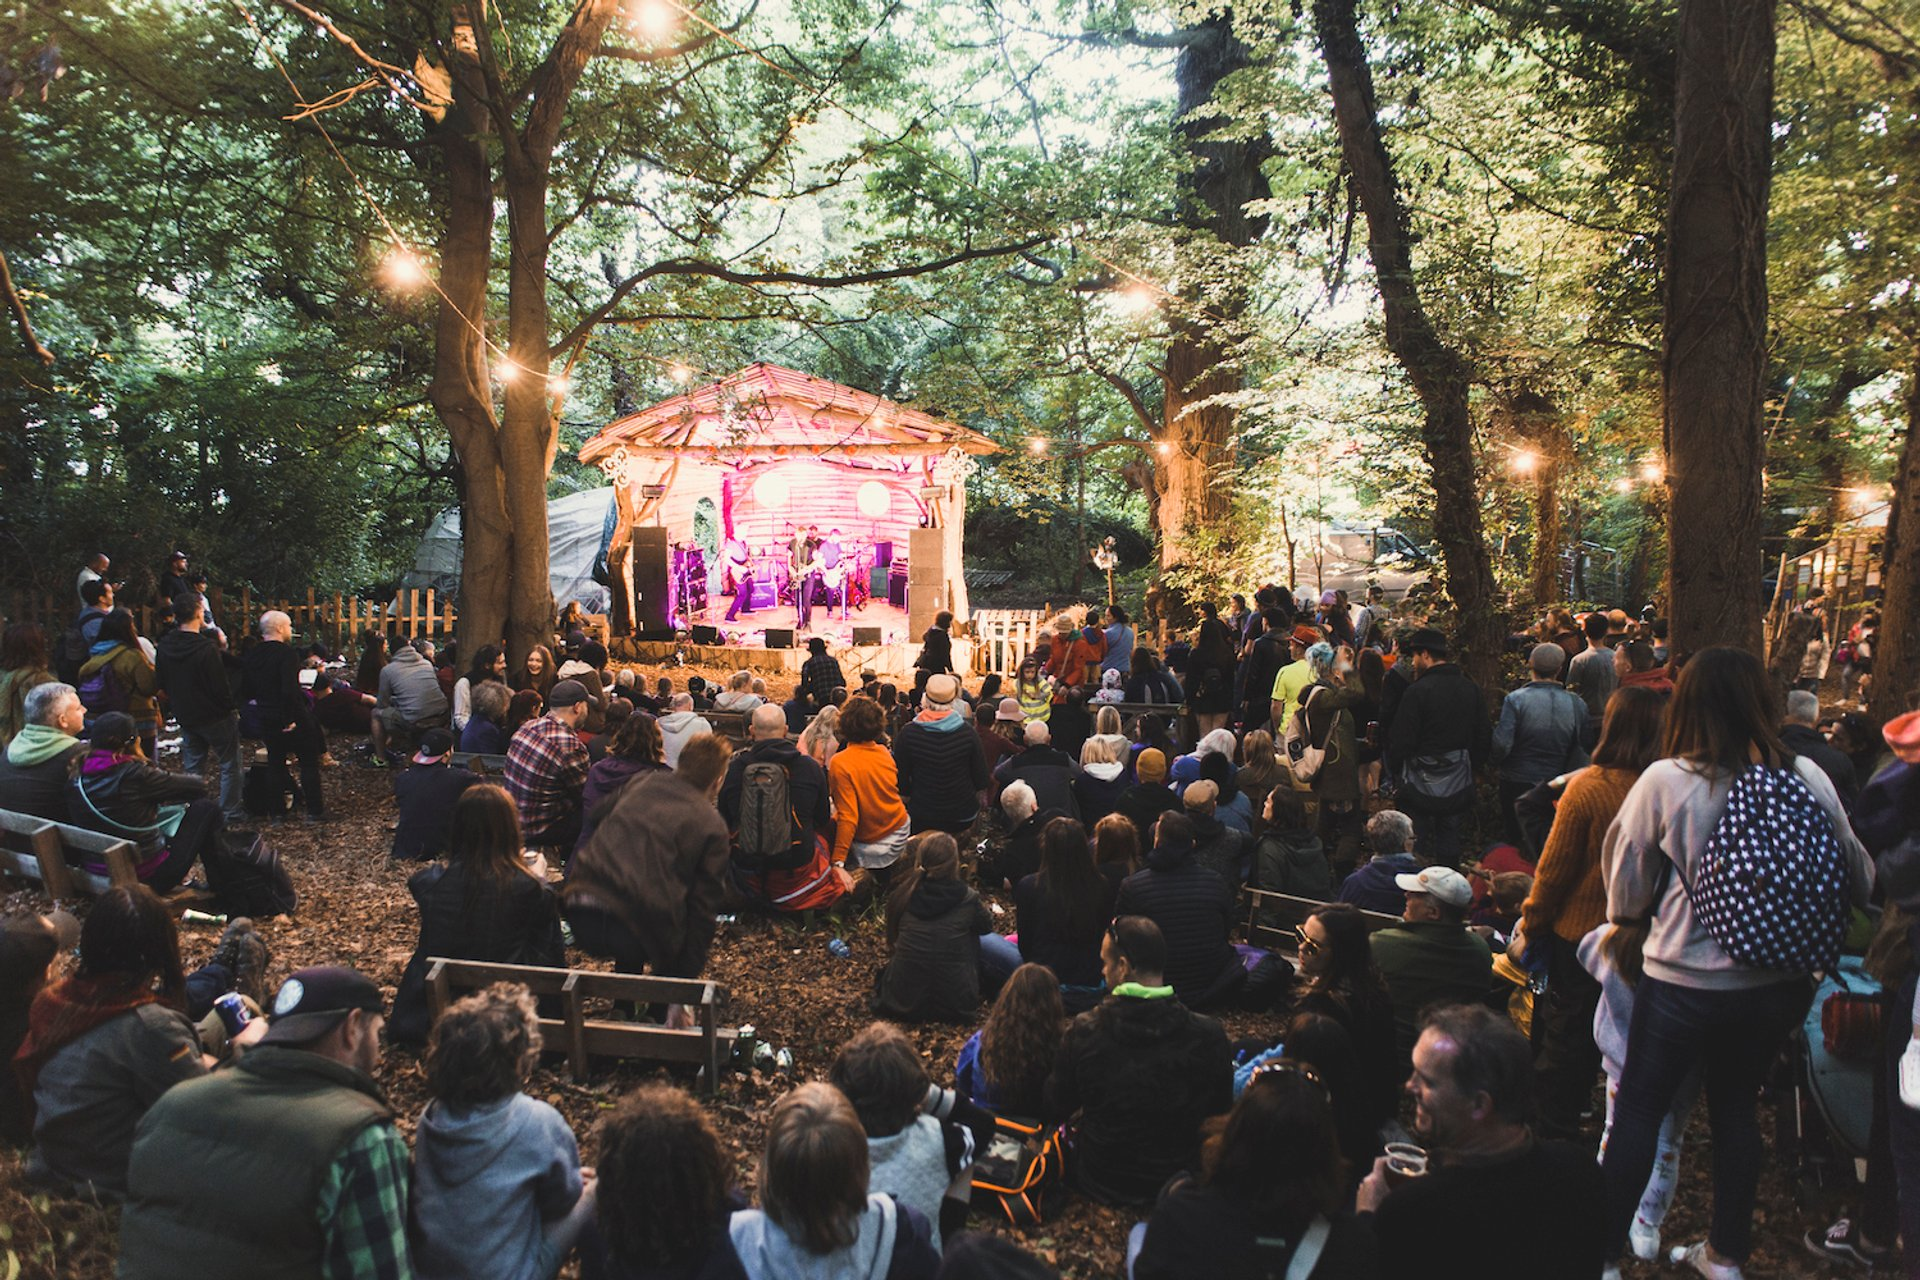 Vantastival in Ireland - Best Season 2020